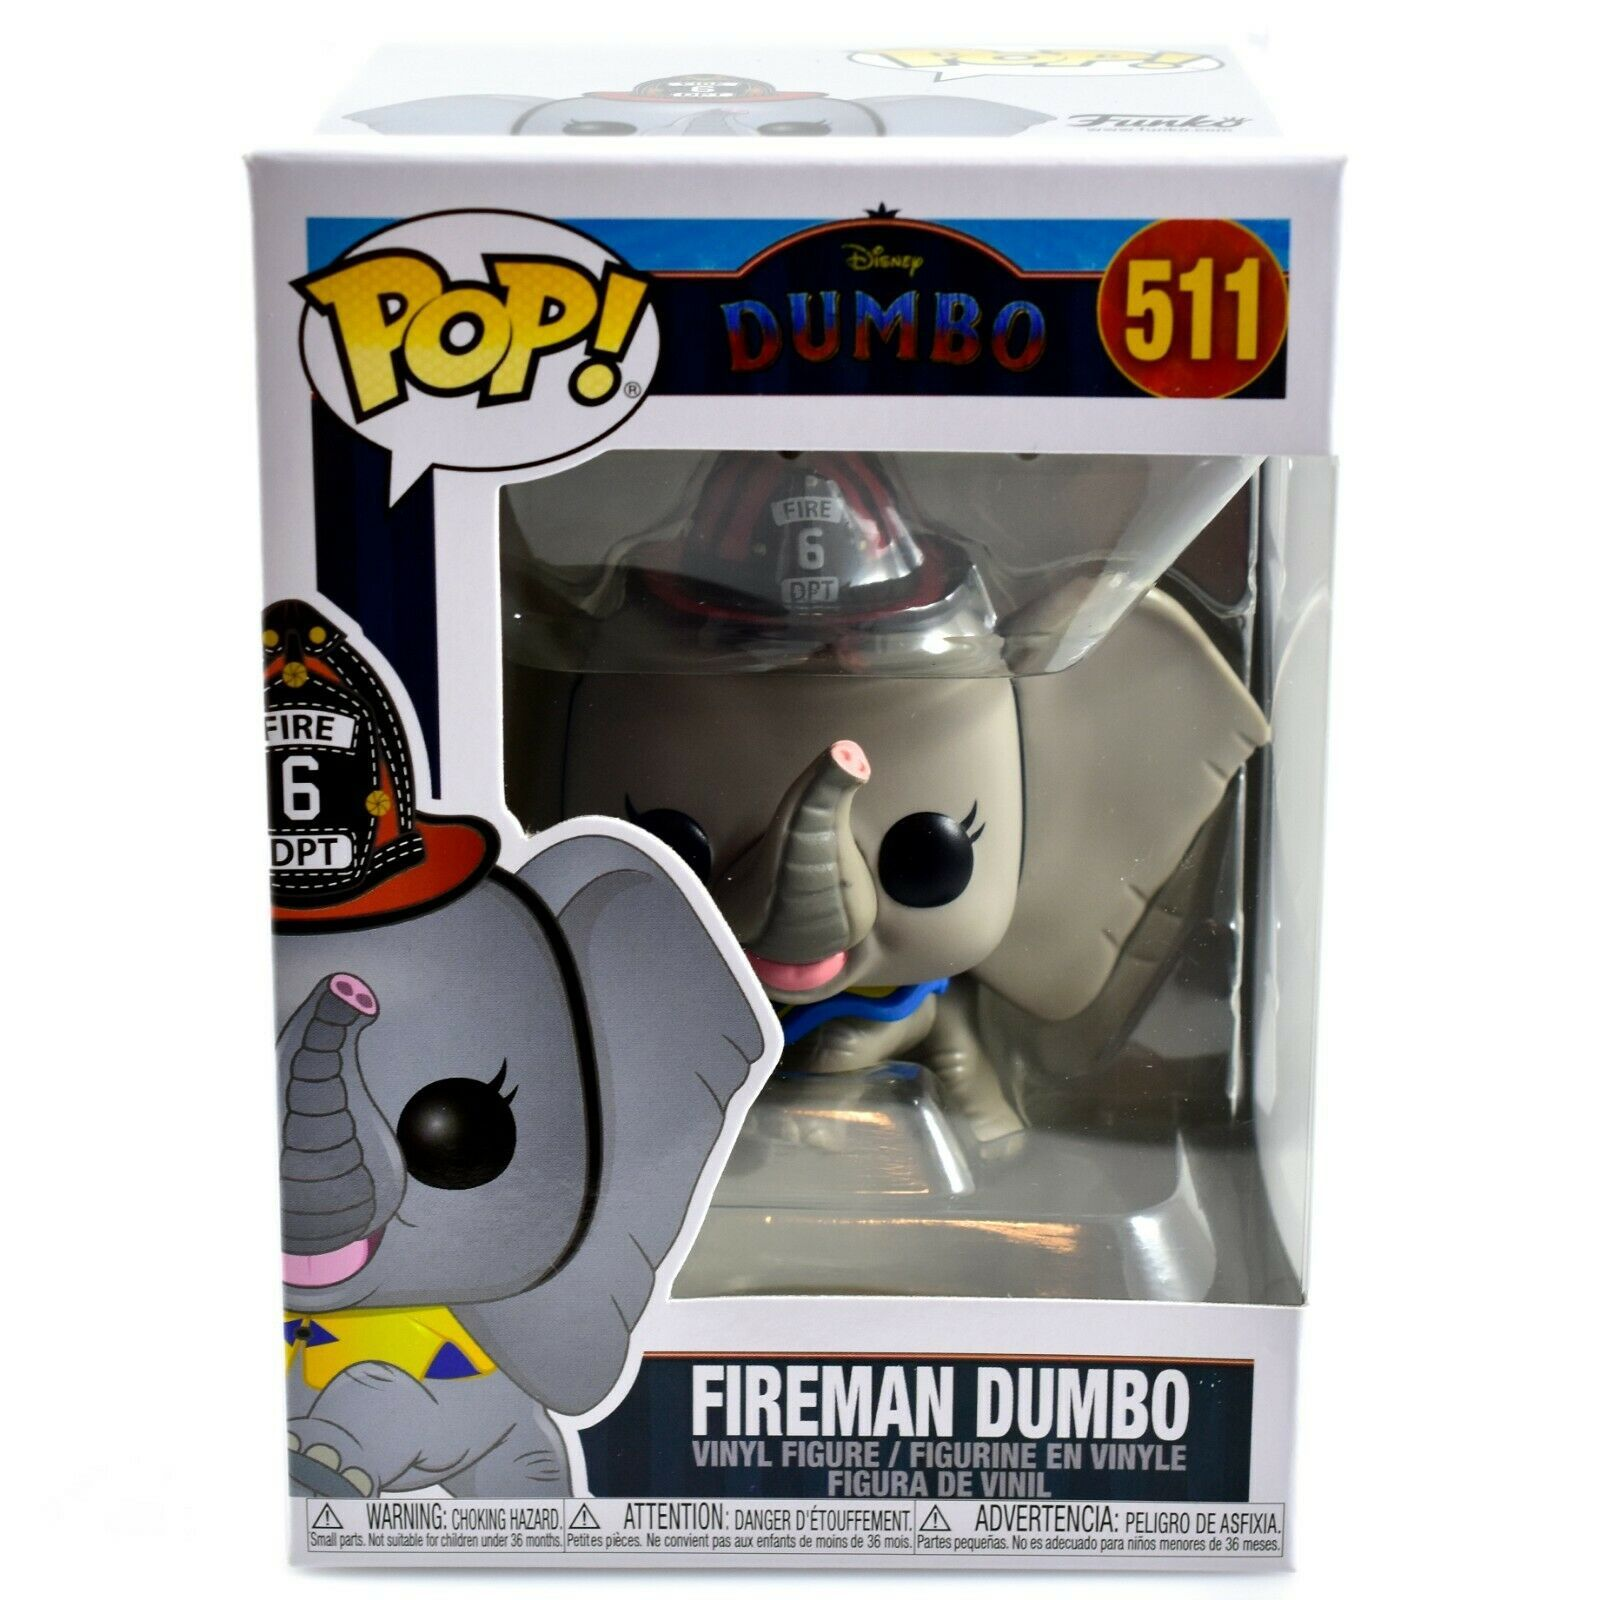 Funko Pop! Disney Fireman Dumbo #511 Vinyl Action Figure